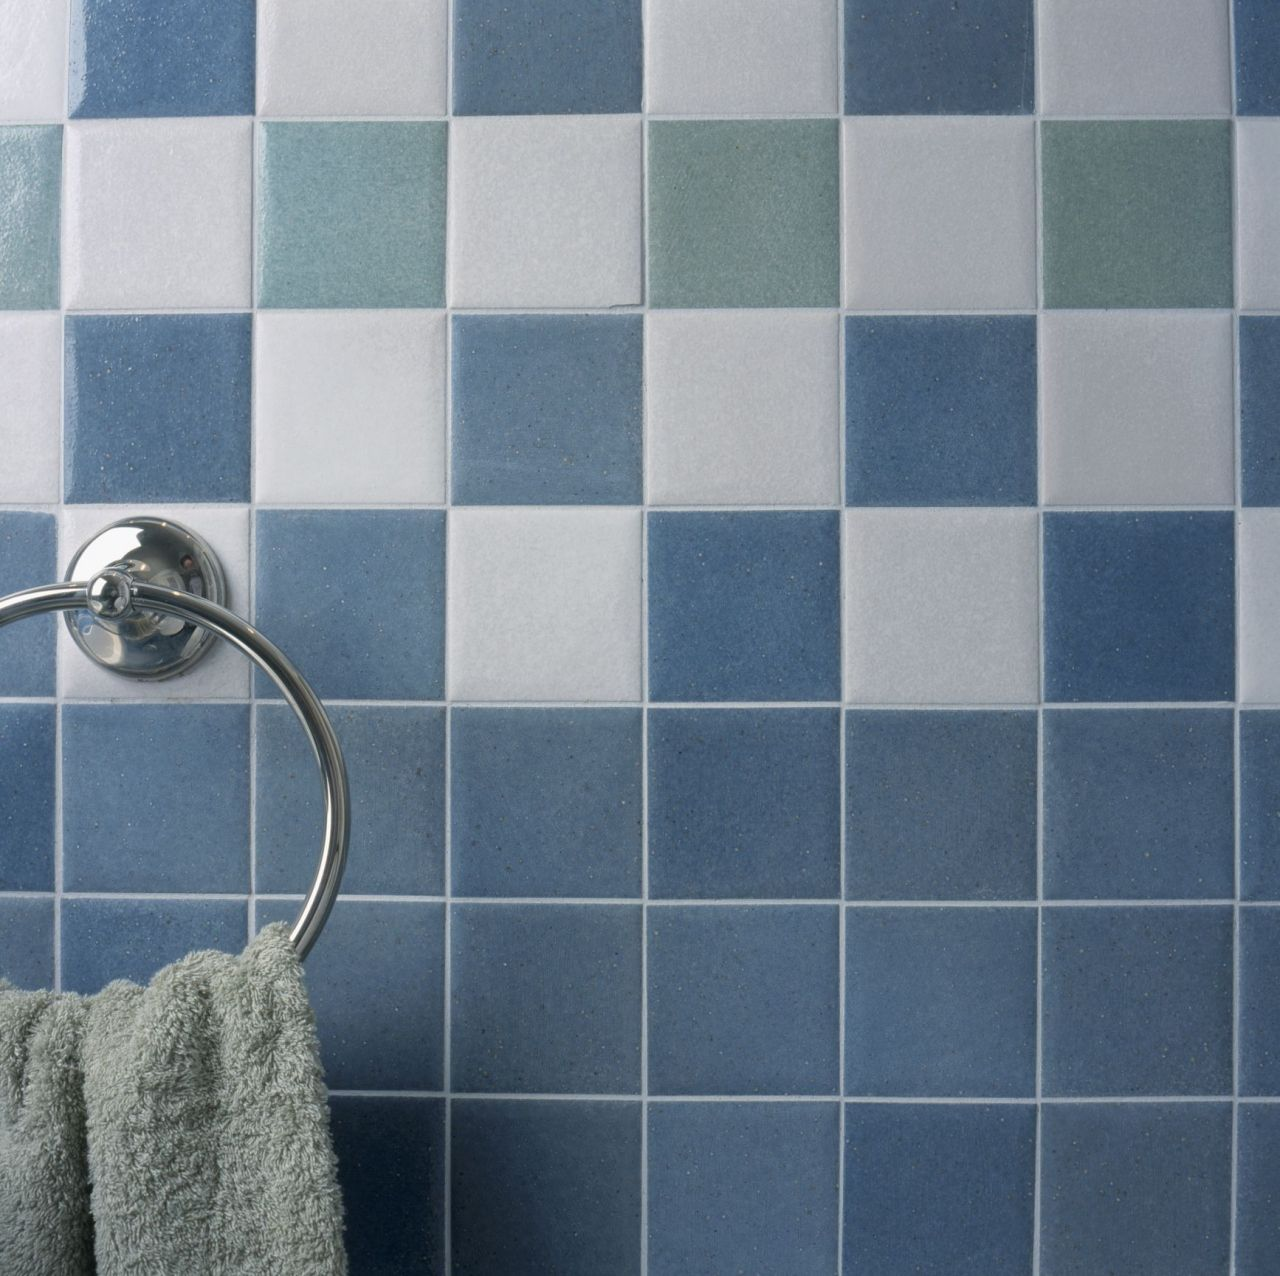 How To Regrout A Shower With Epoxy Grout On The Shower Floor